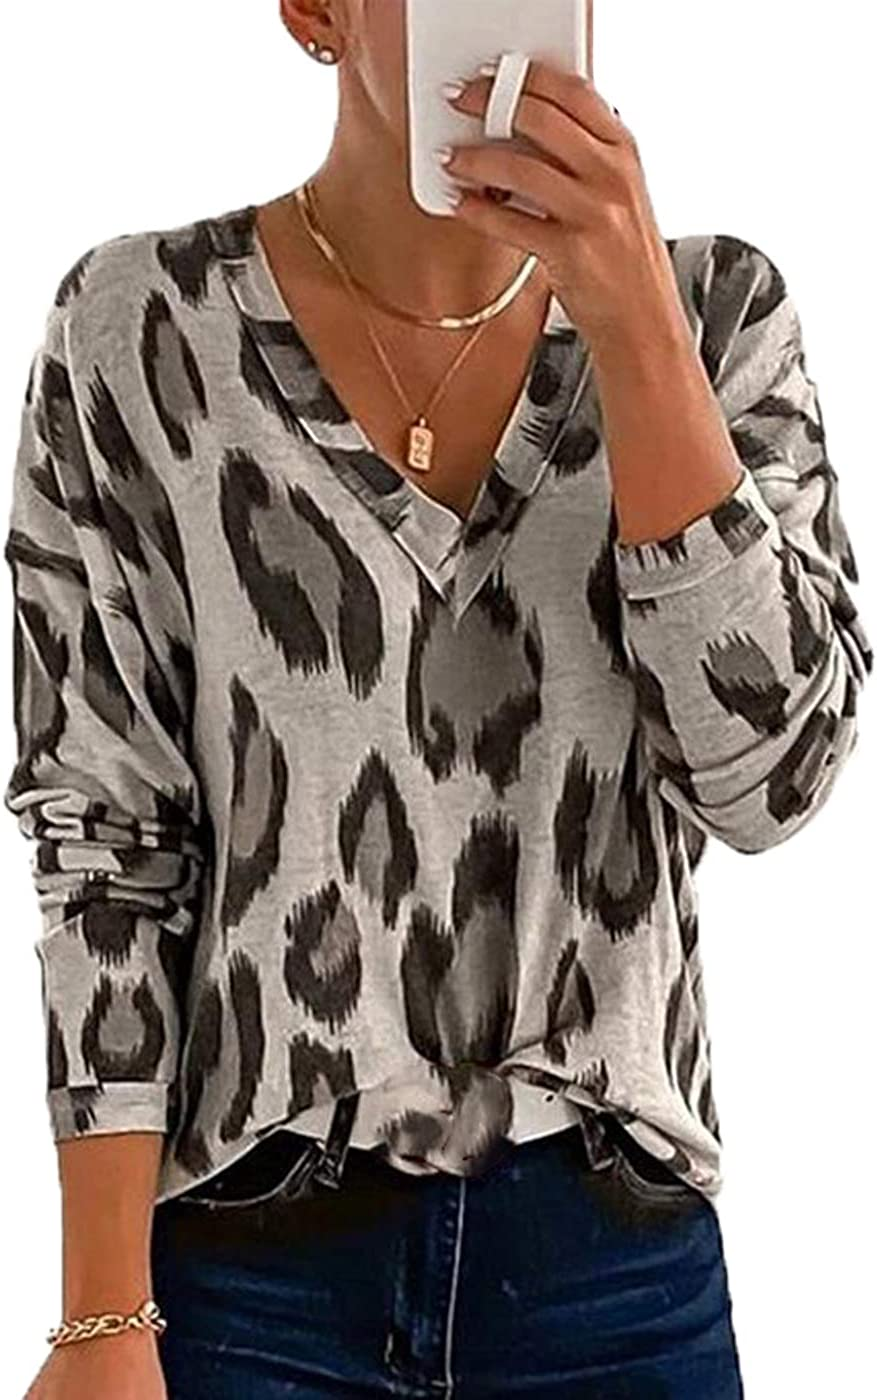 Cocoinsity Womens Casual Shirts Leopard Shirt Long Sleeve Blouses V-Neck Tunic Top